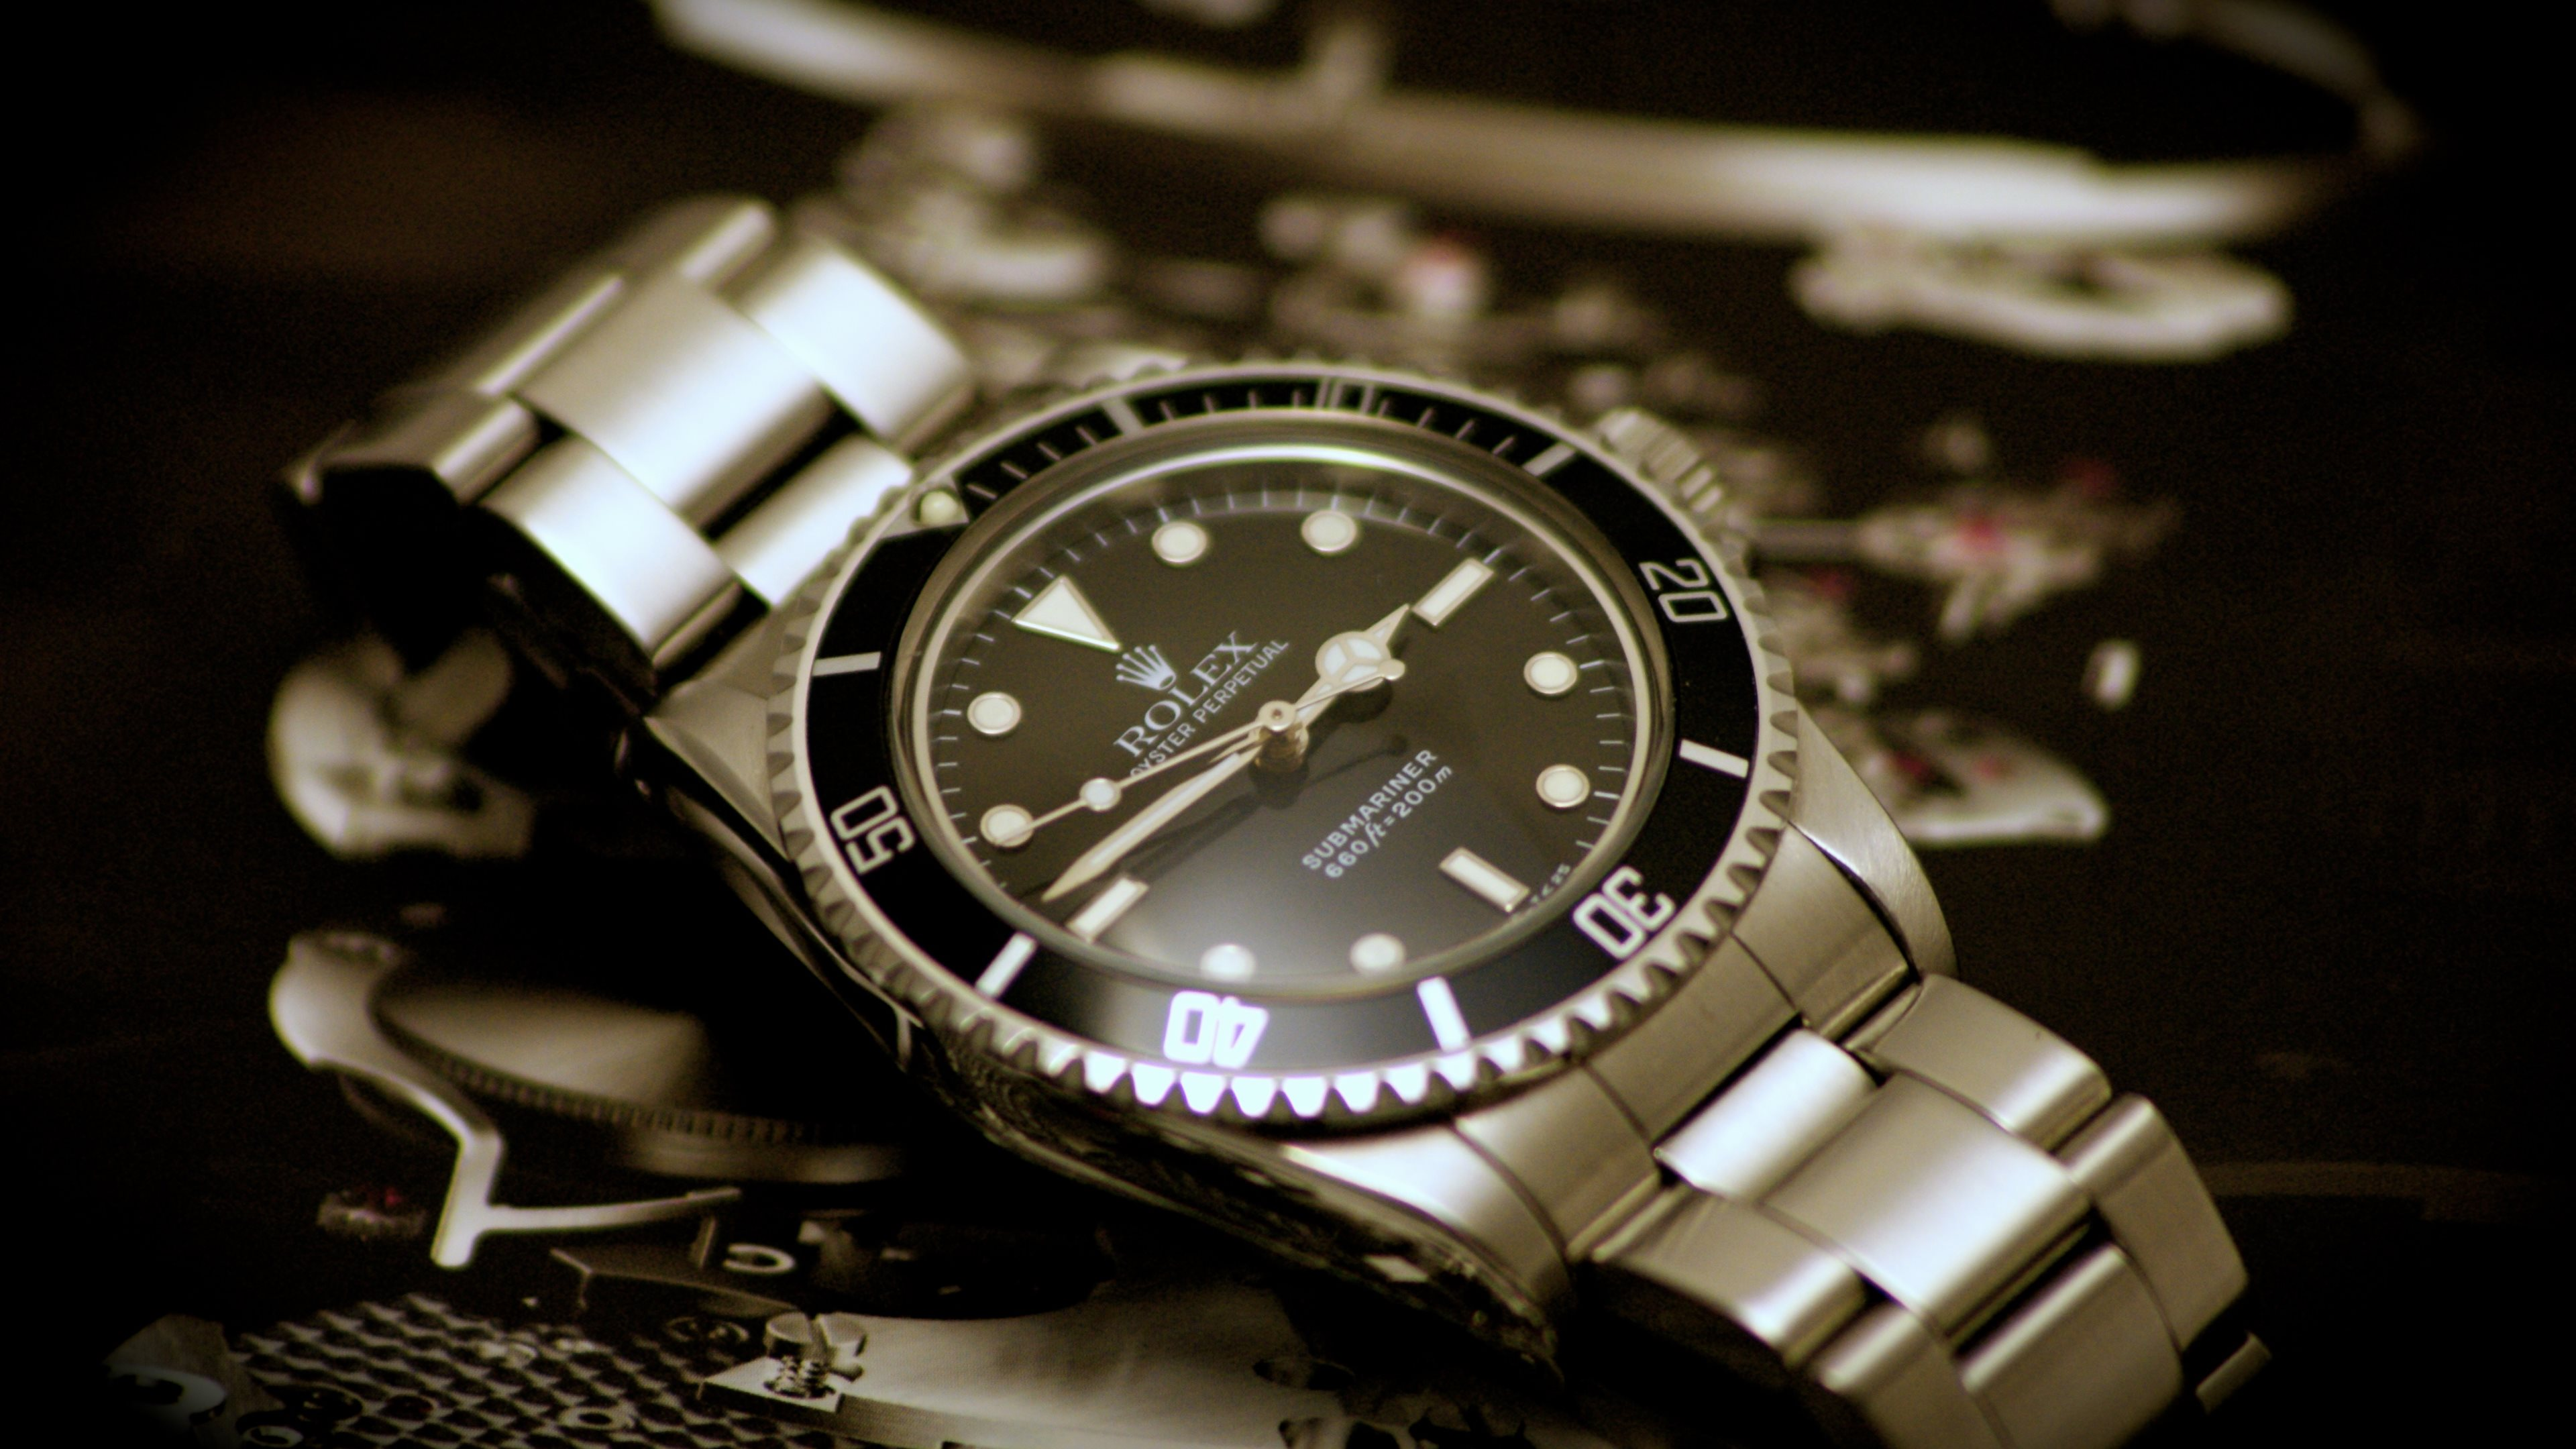 watches wallpapers in hd 4k and wide sizes